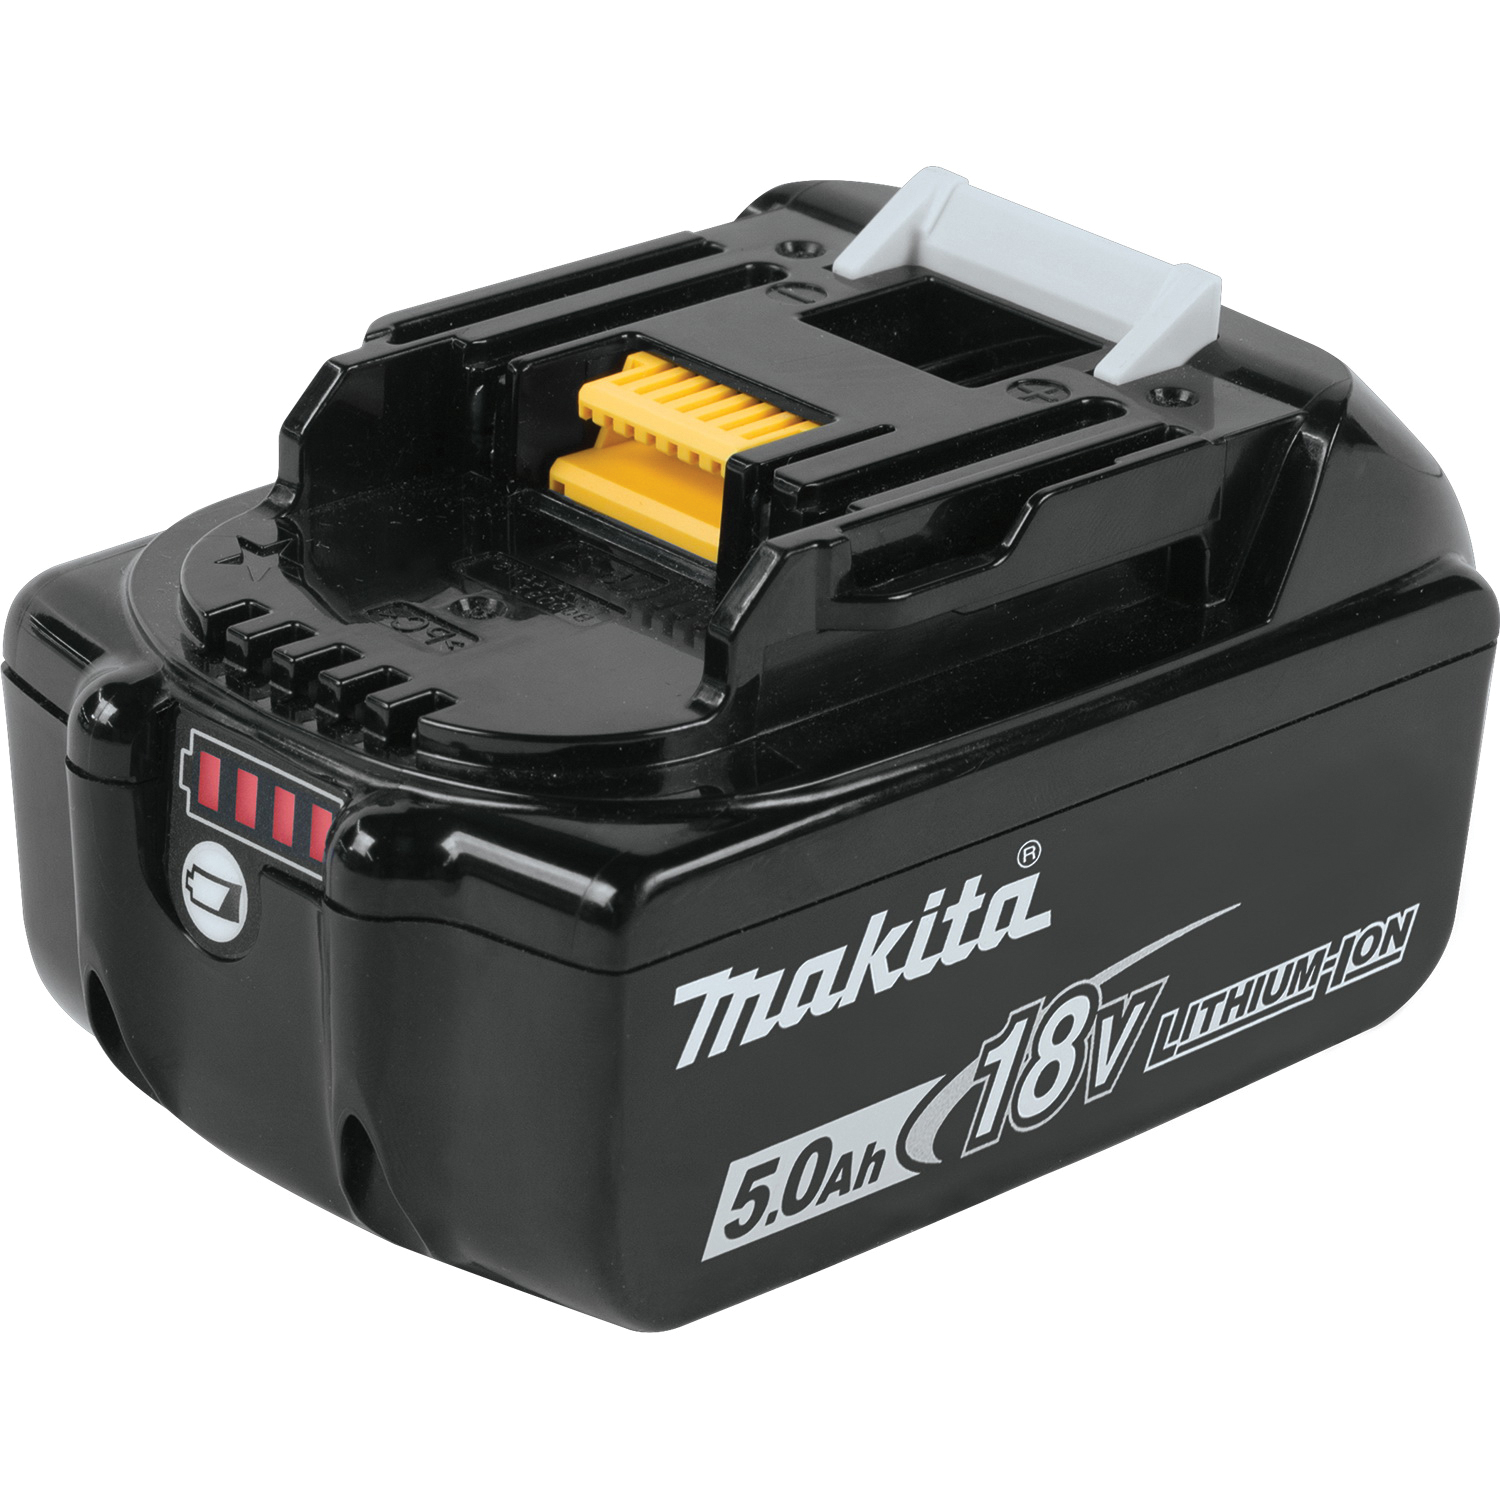 Picture of Makita BL1850B Battery, 18 V Battery, 5 Ah, 1